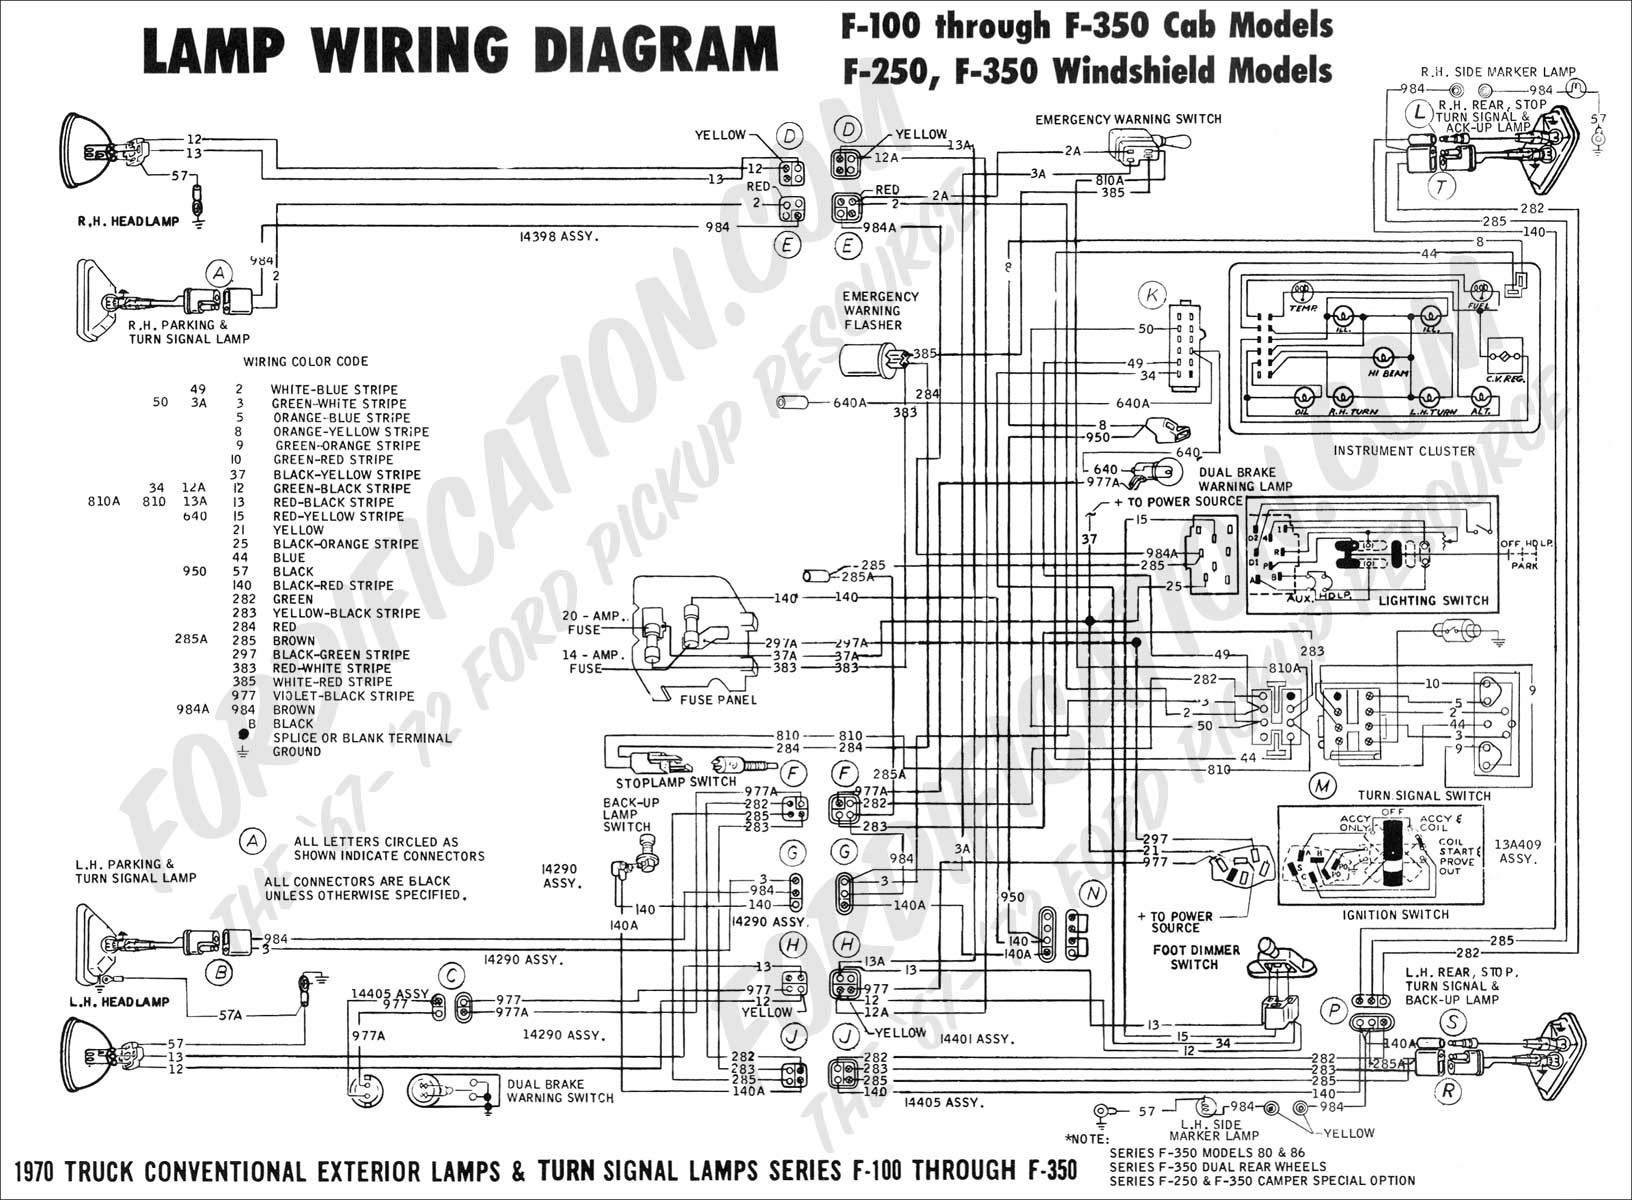 honda ruckus 49cc wiring diagram wiring library Audiovox Wiring Diagram 2009 honda ruckus wiring diagram also garage parking sensor arduino 2007 honda ruckus wiring diagram 2009